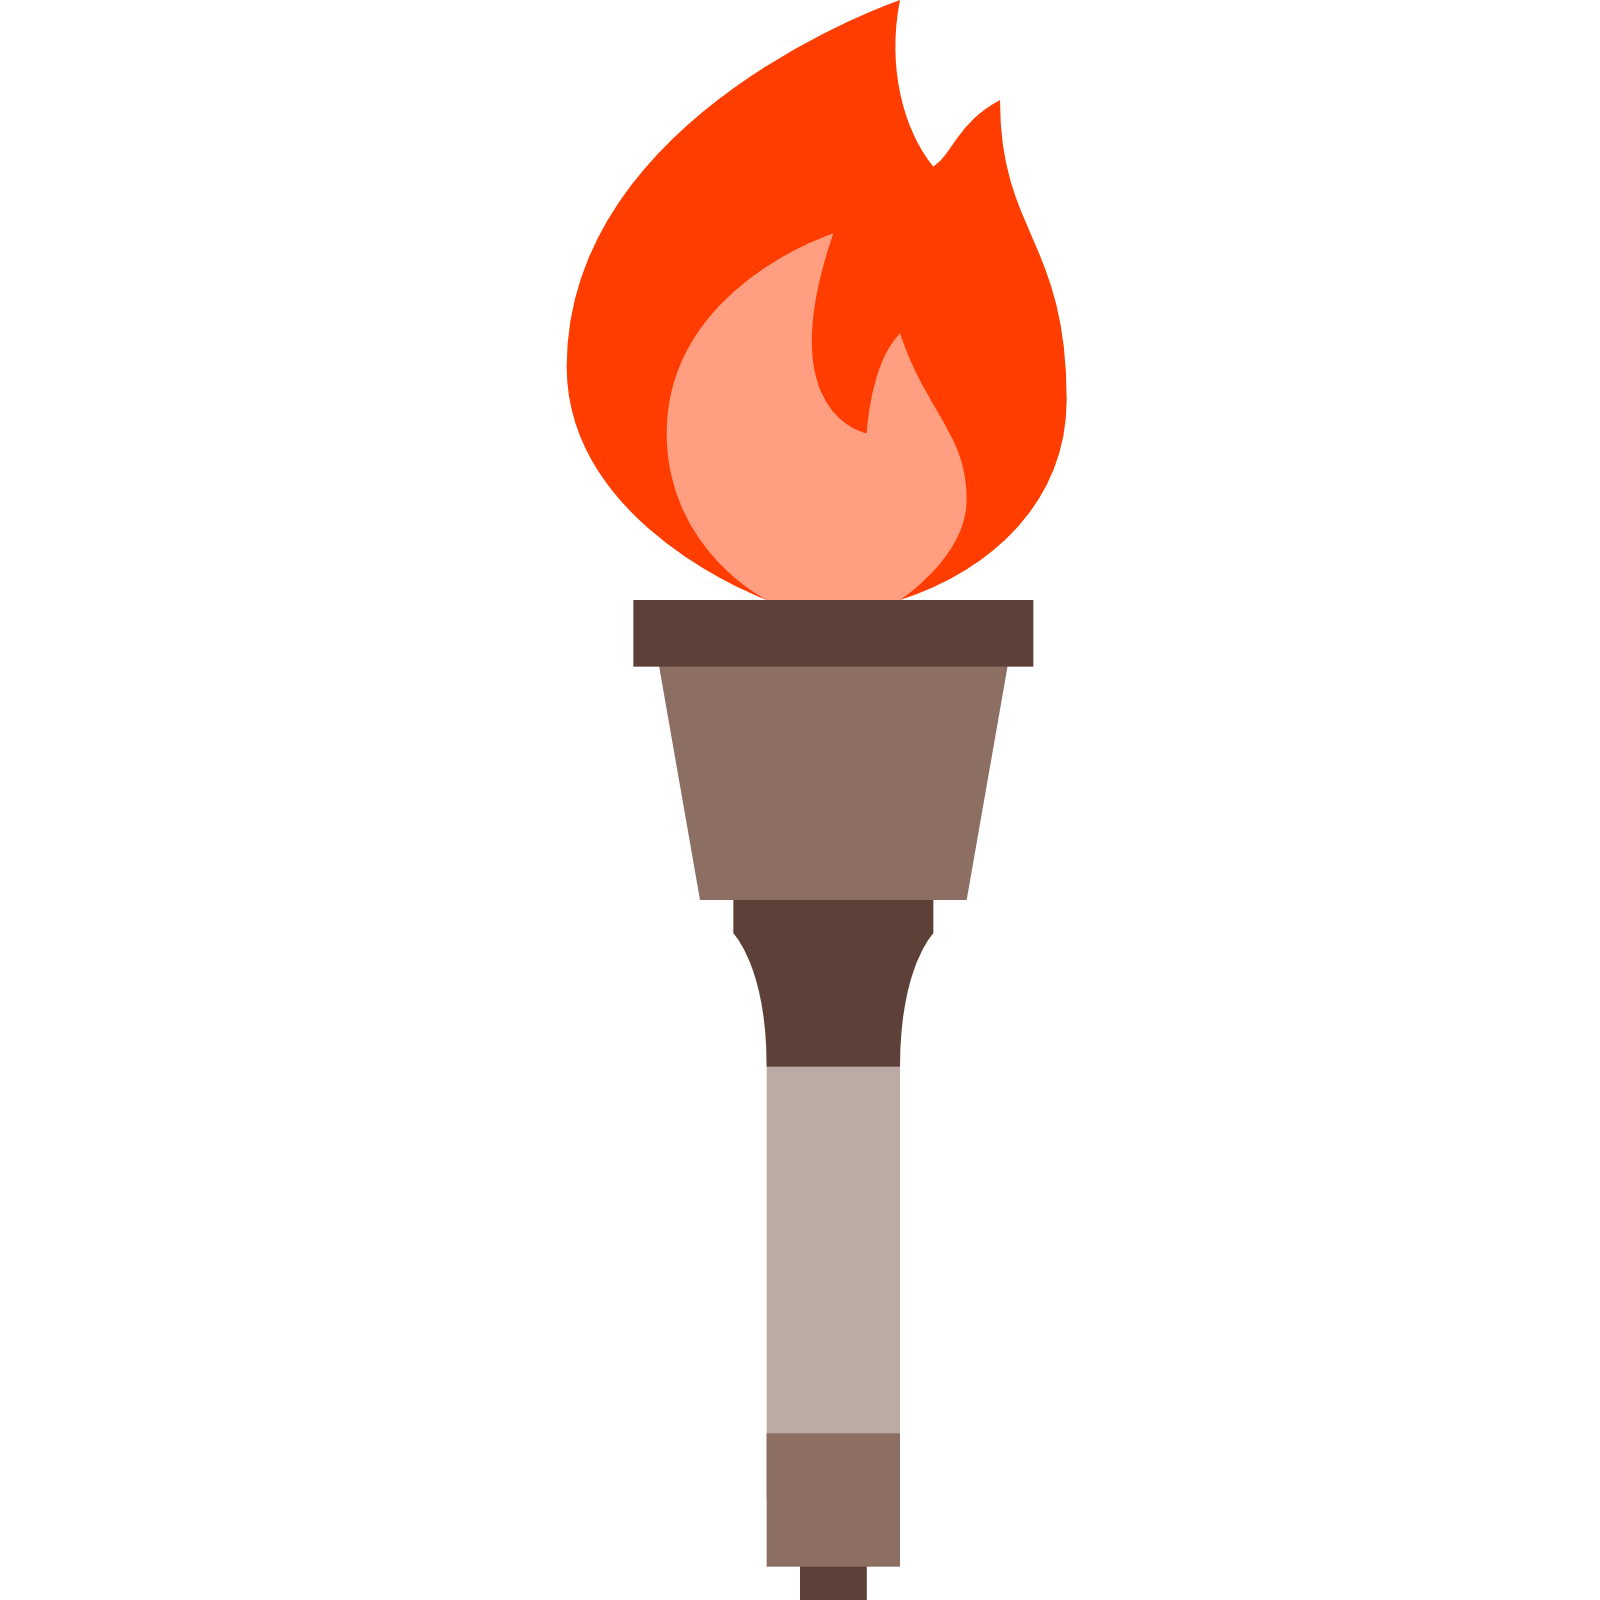 Torch clipart runner olympic. Transparent png pictures free